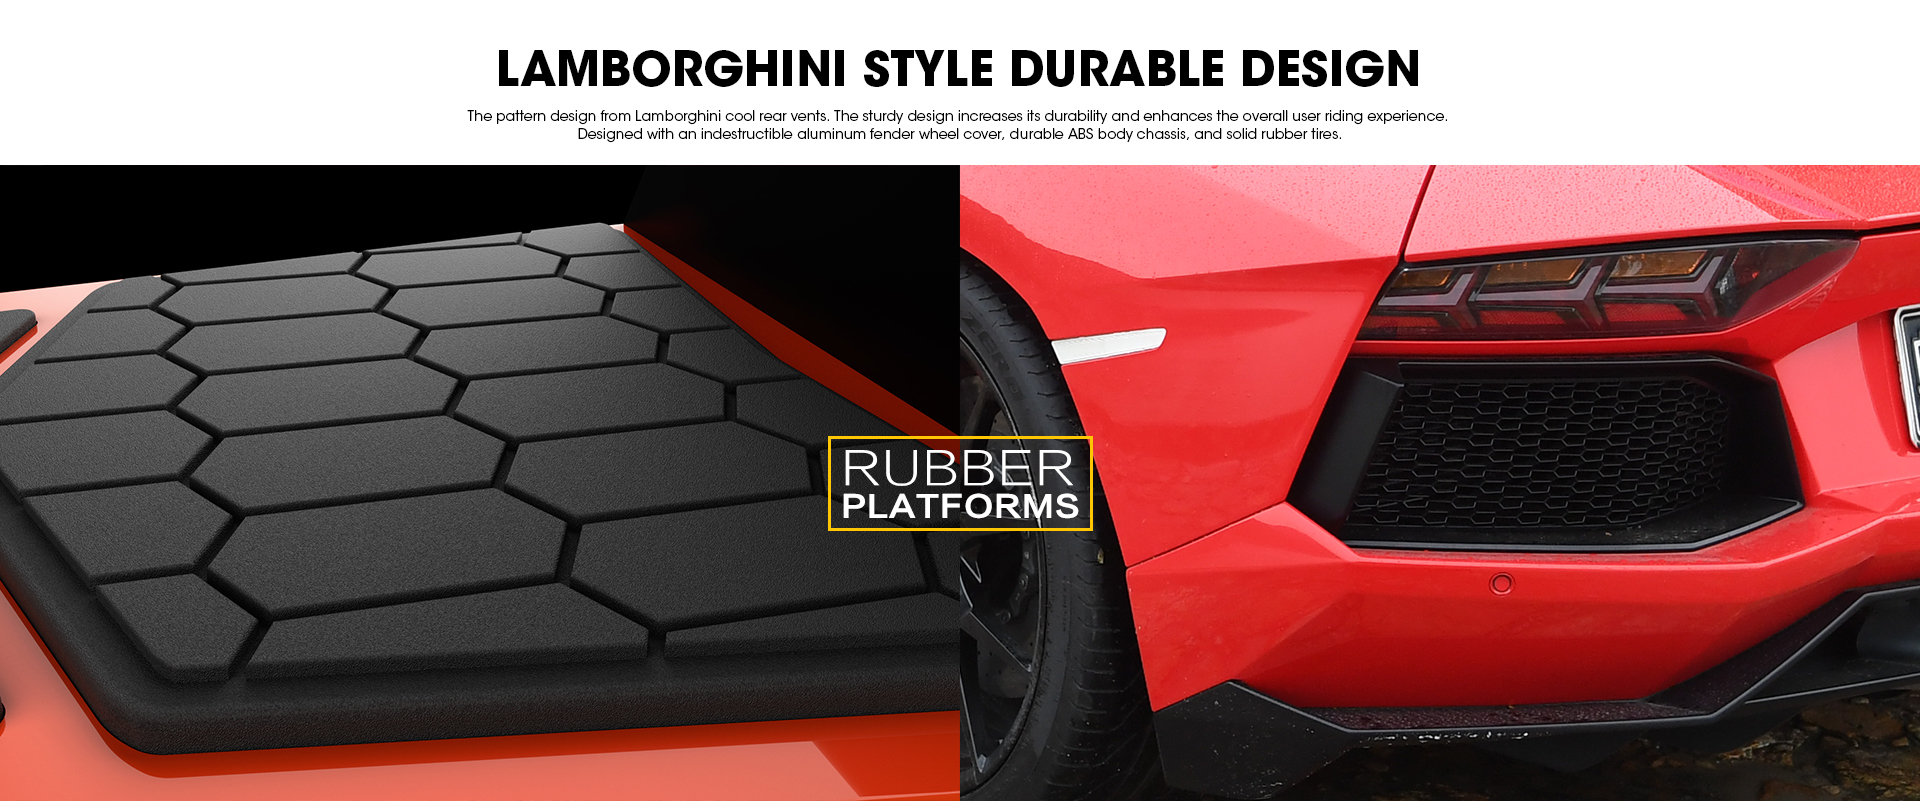 Red Lamborghini Hoverboard 8.5 inch Offical Automobili Lamborghini Authorized Bluetooth Hoverboard - Lamborghini Style Footpads